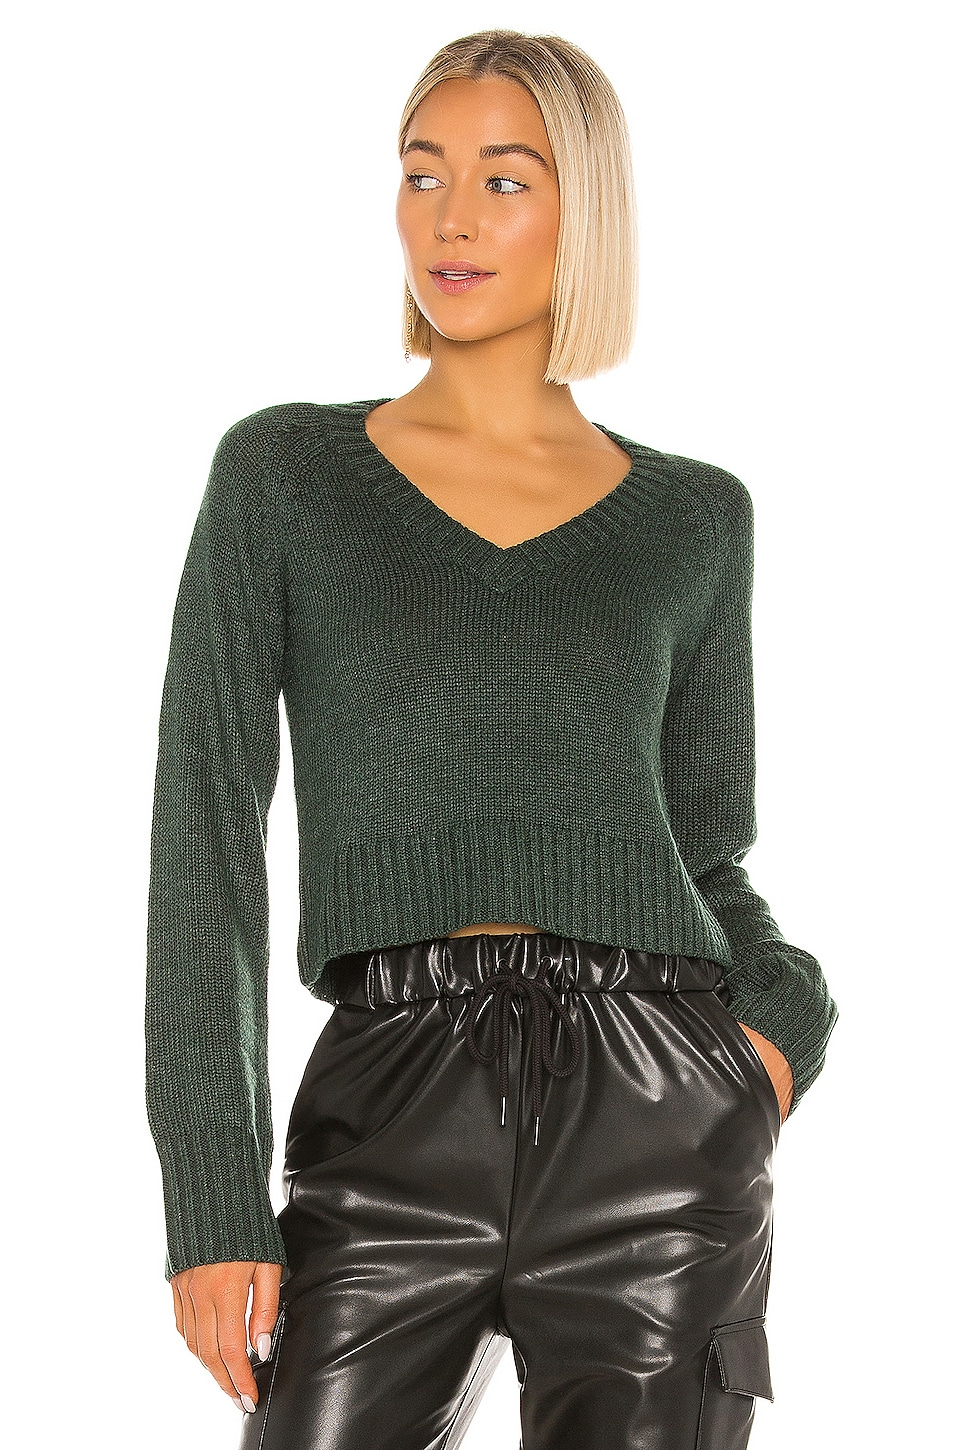 Lovers + Friends Jansen Sweater in Dark Green